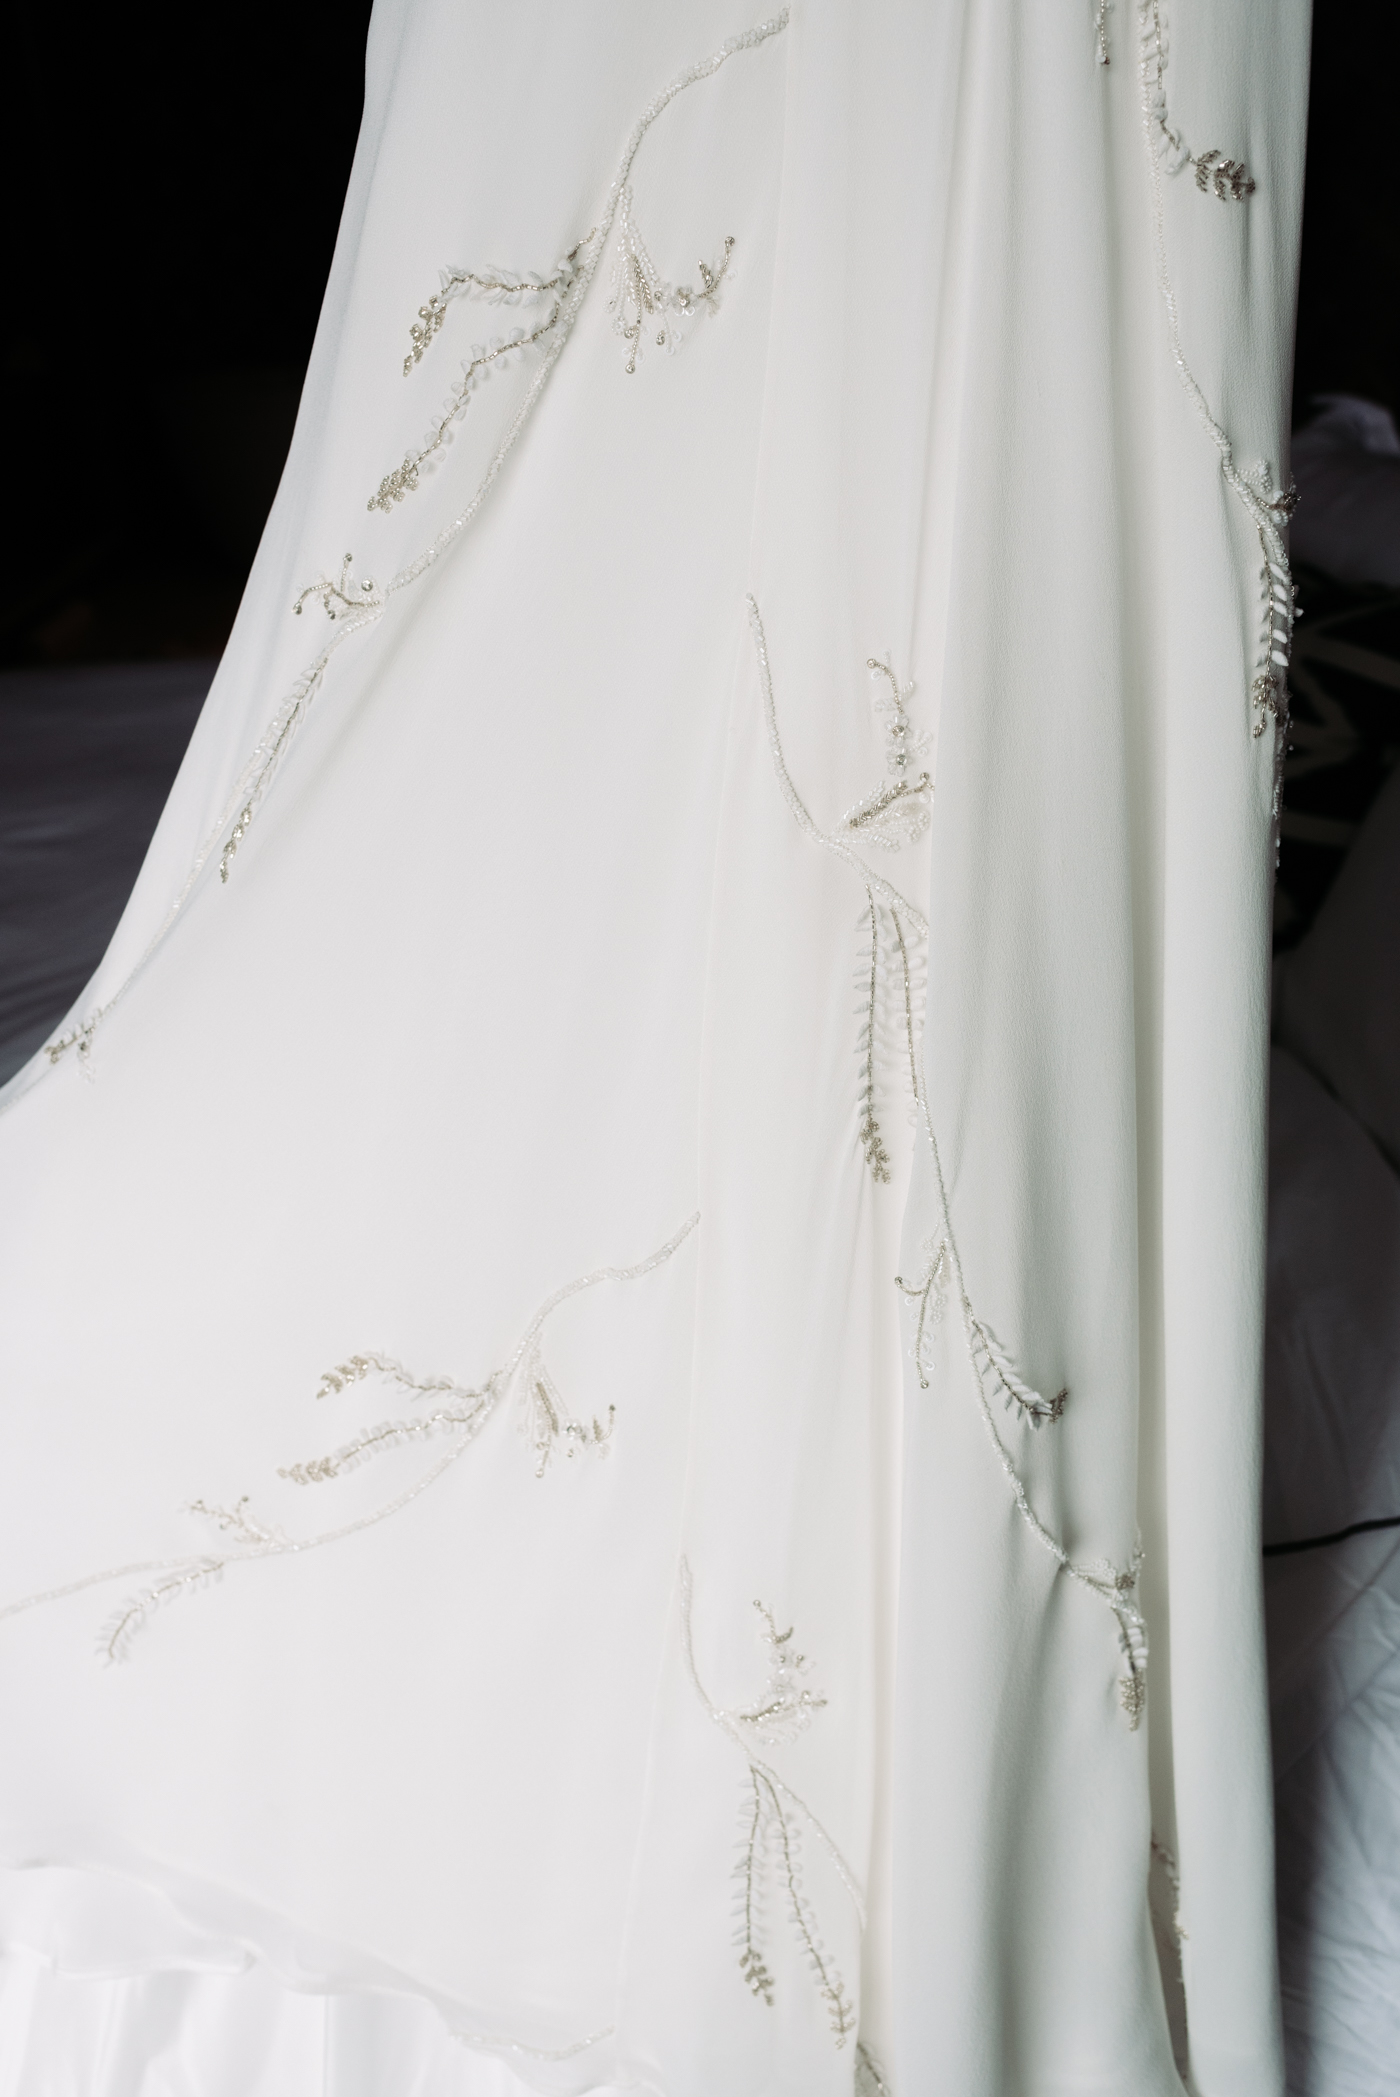 Wedding dress gown wedding details Houston Texas portrait bride